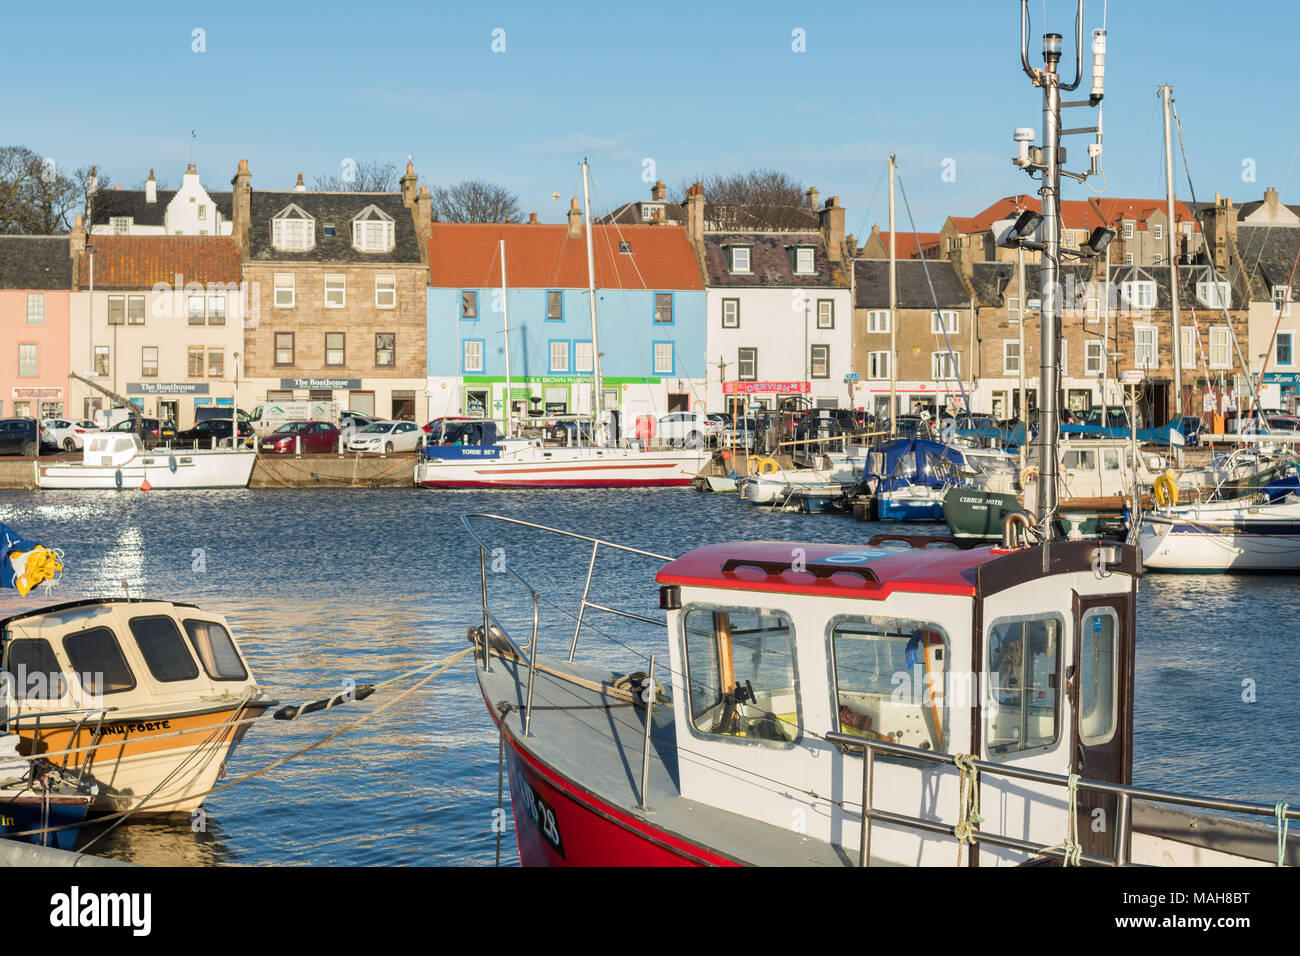 Anstruther - boats and waterfront, East Neuk, Fife, Scotland, UK - Stock Image